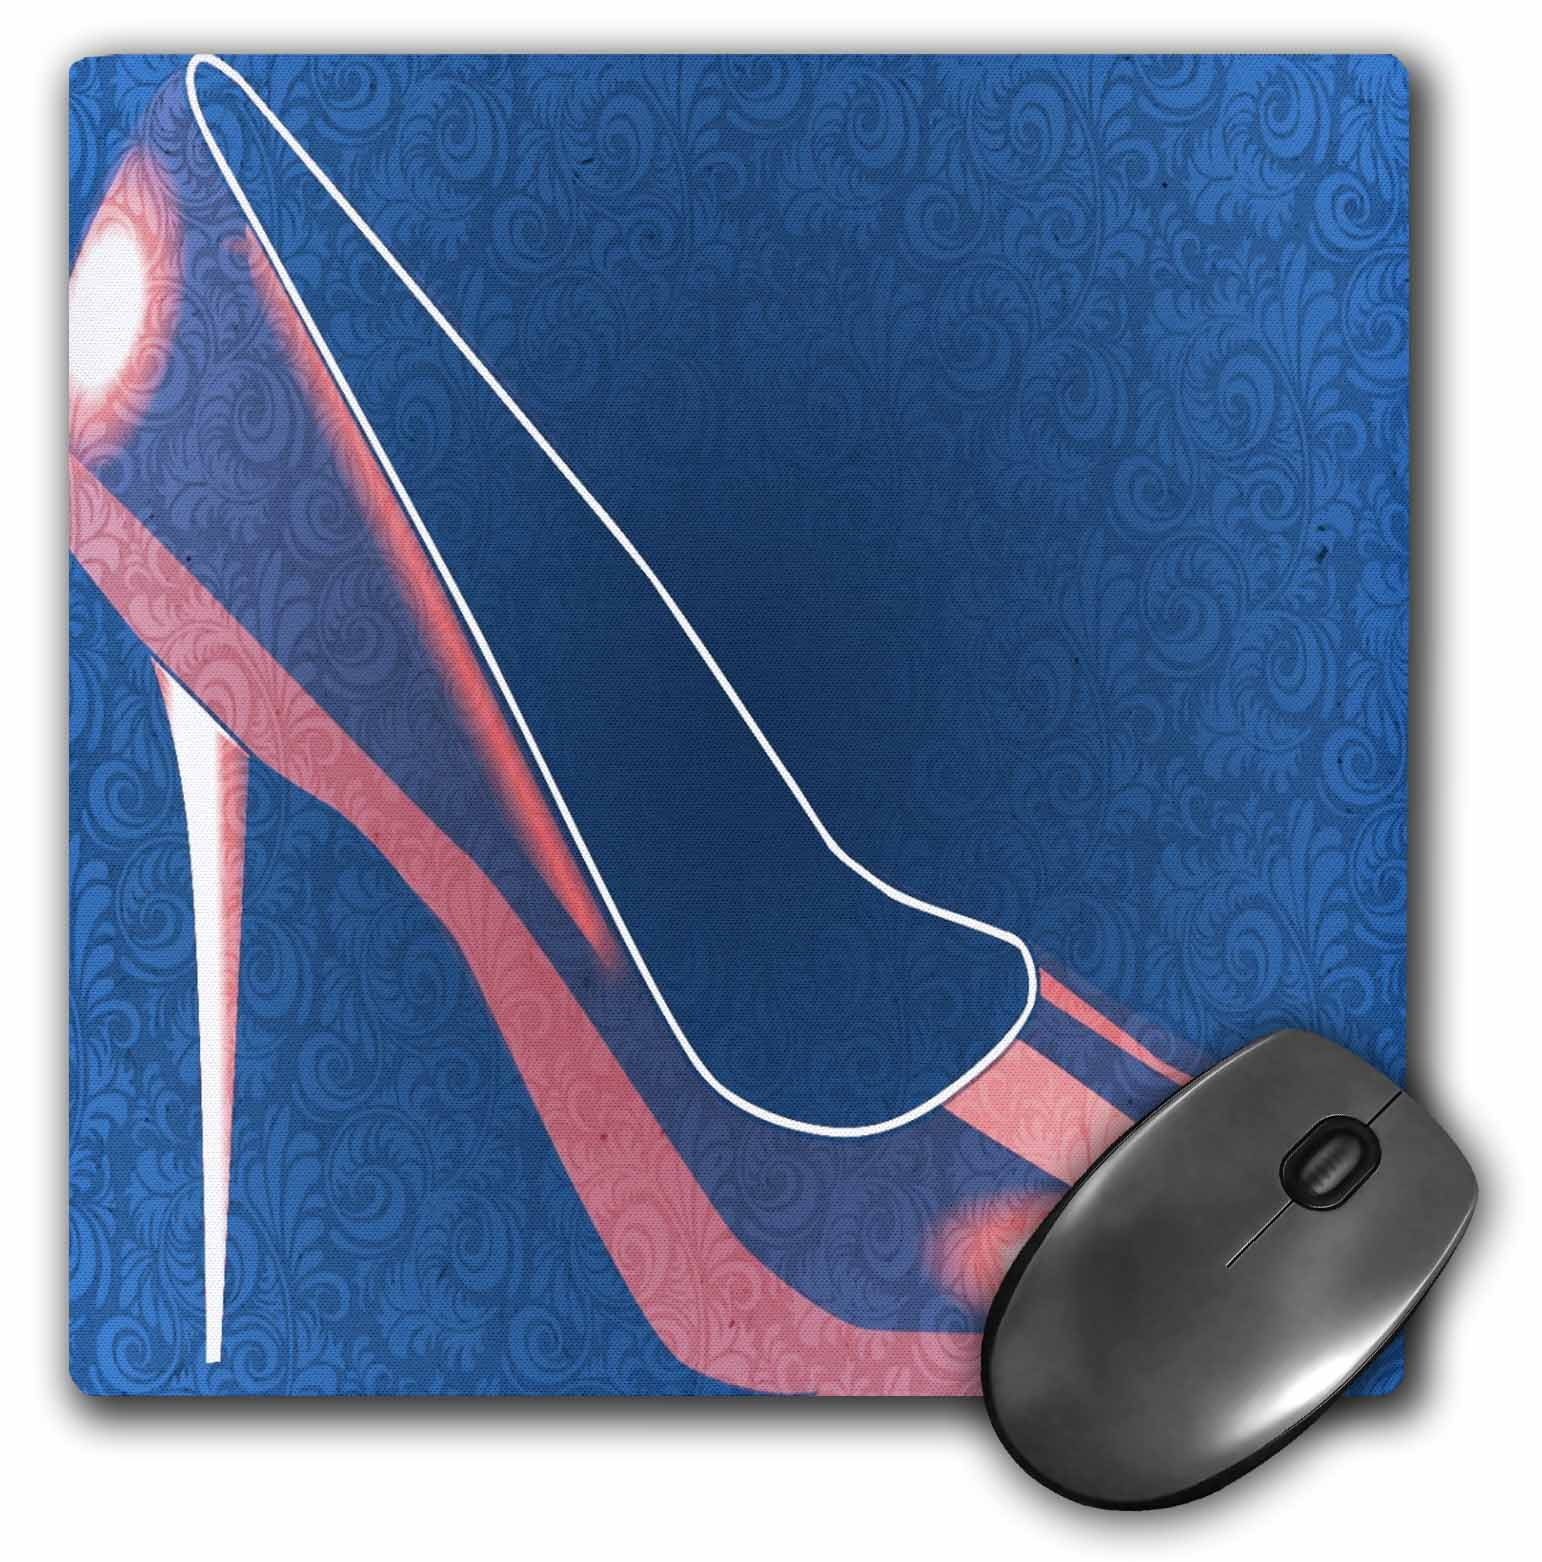 Image of 3dRose Decorative Red Shoe - High Heel - Womens Fashion, Mouse Pad, 8 by 8 inches